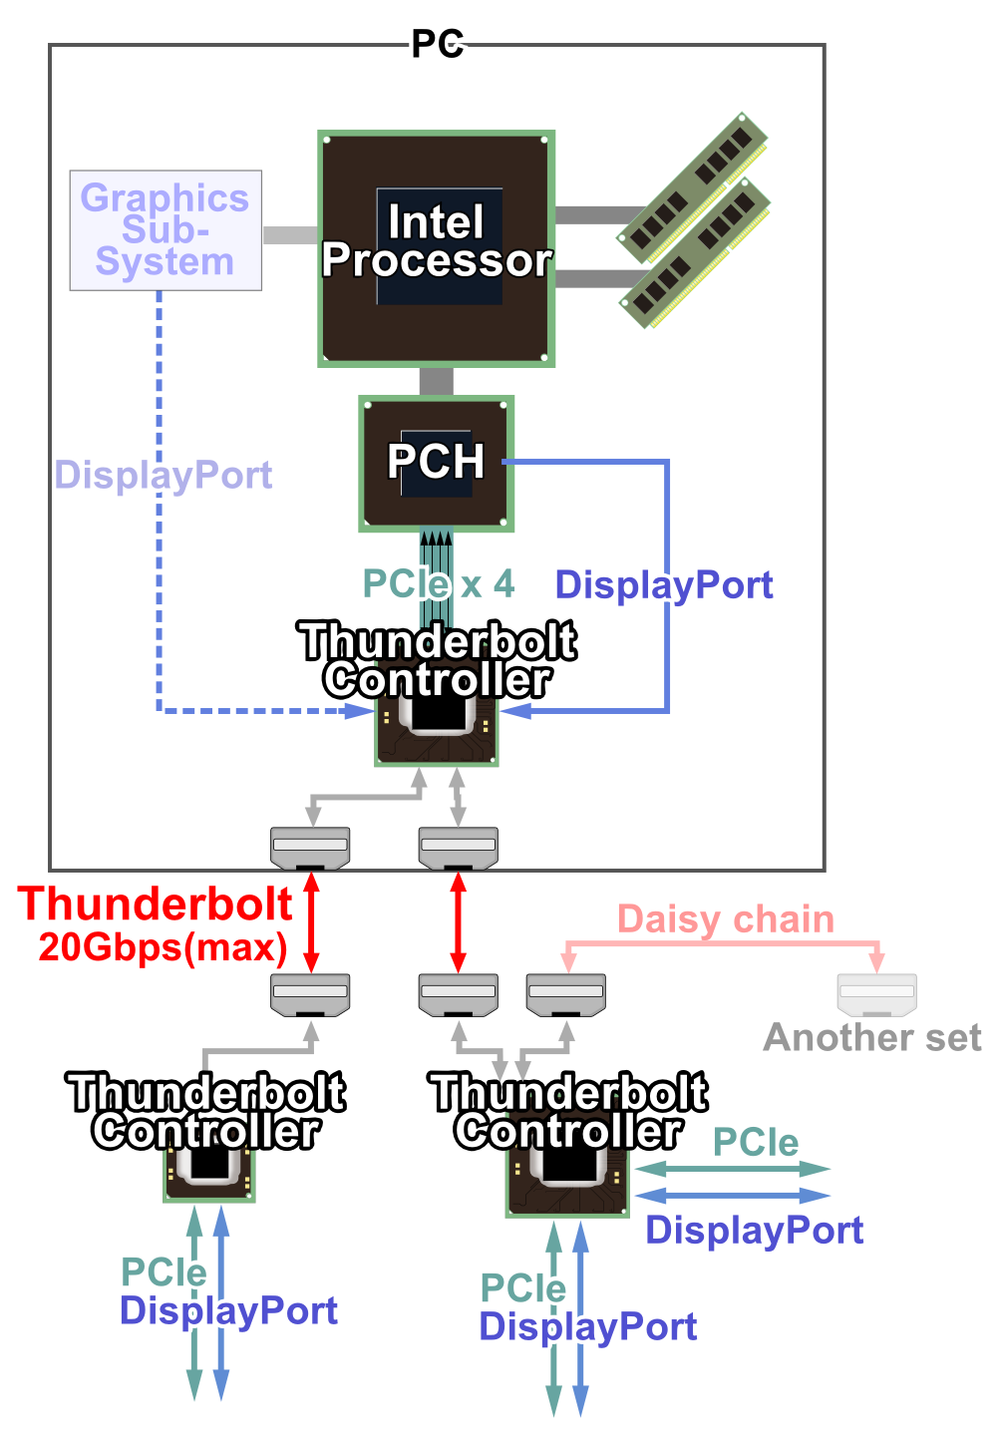 Thunderbolt 2 functional diagram - image attribution:  Shigeru23 at English Wikipedia